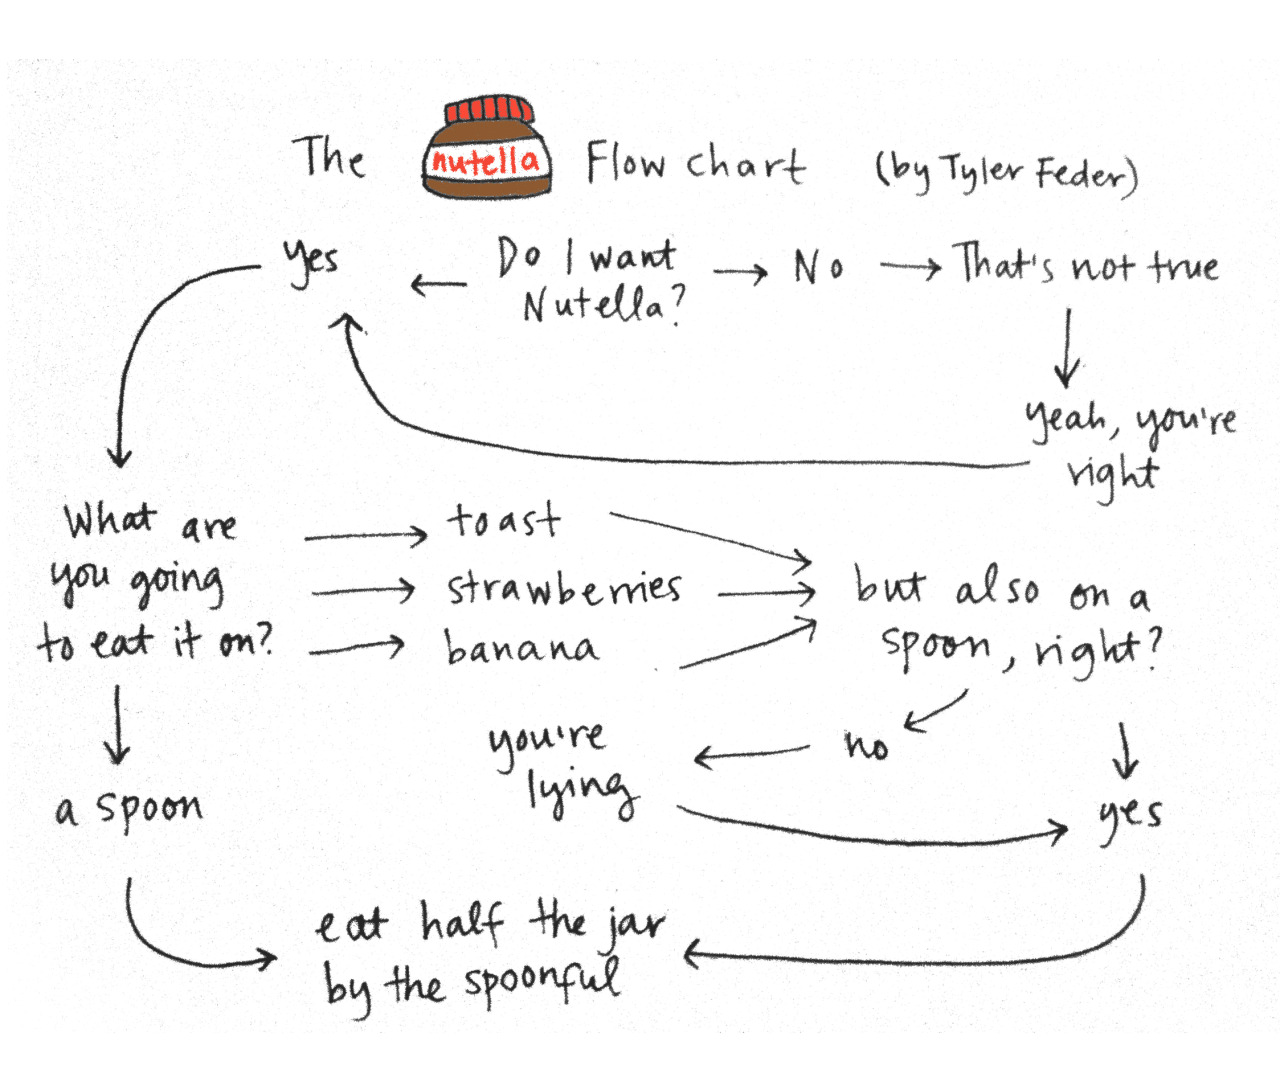 The Nutella flow chart (by Tyler Feder)